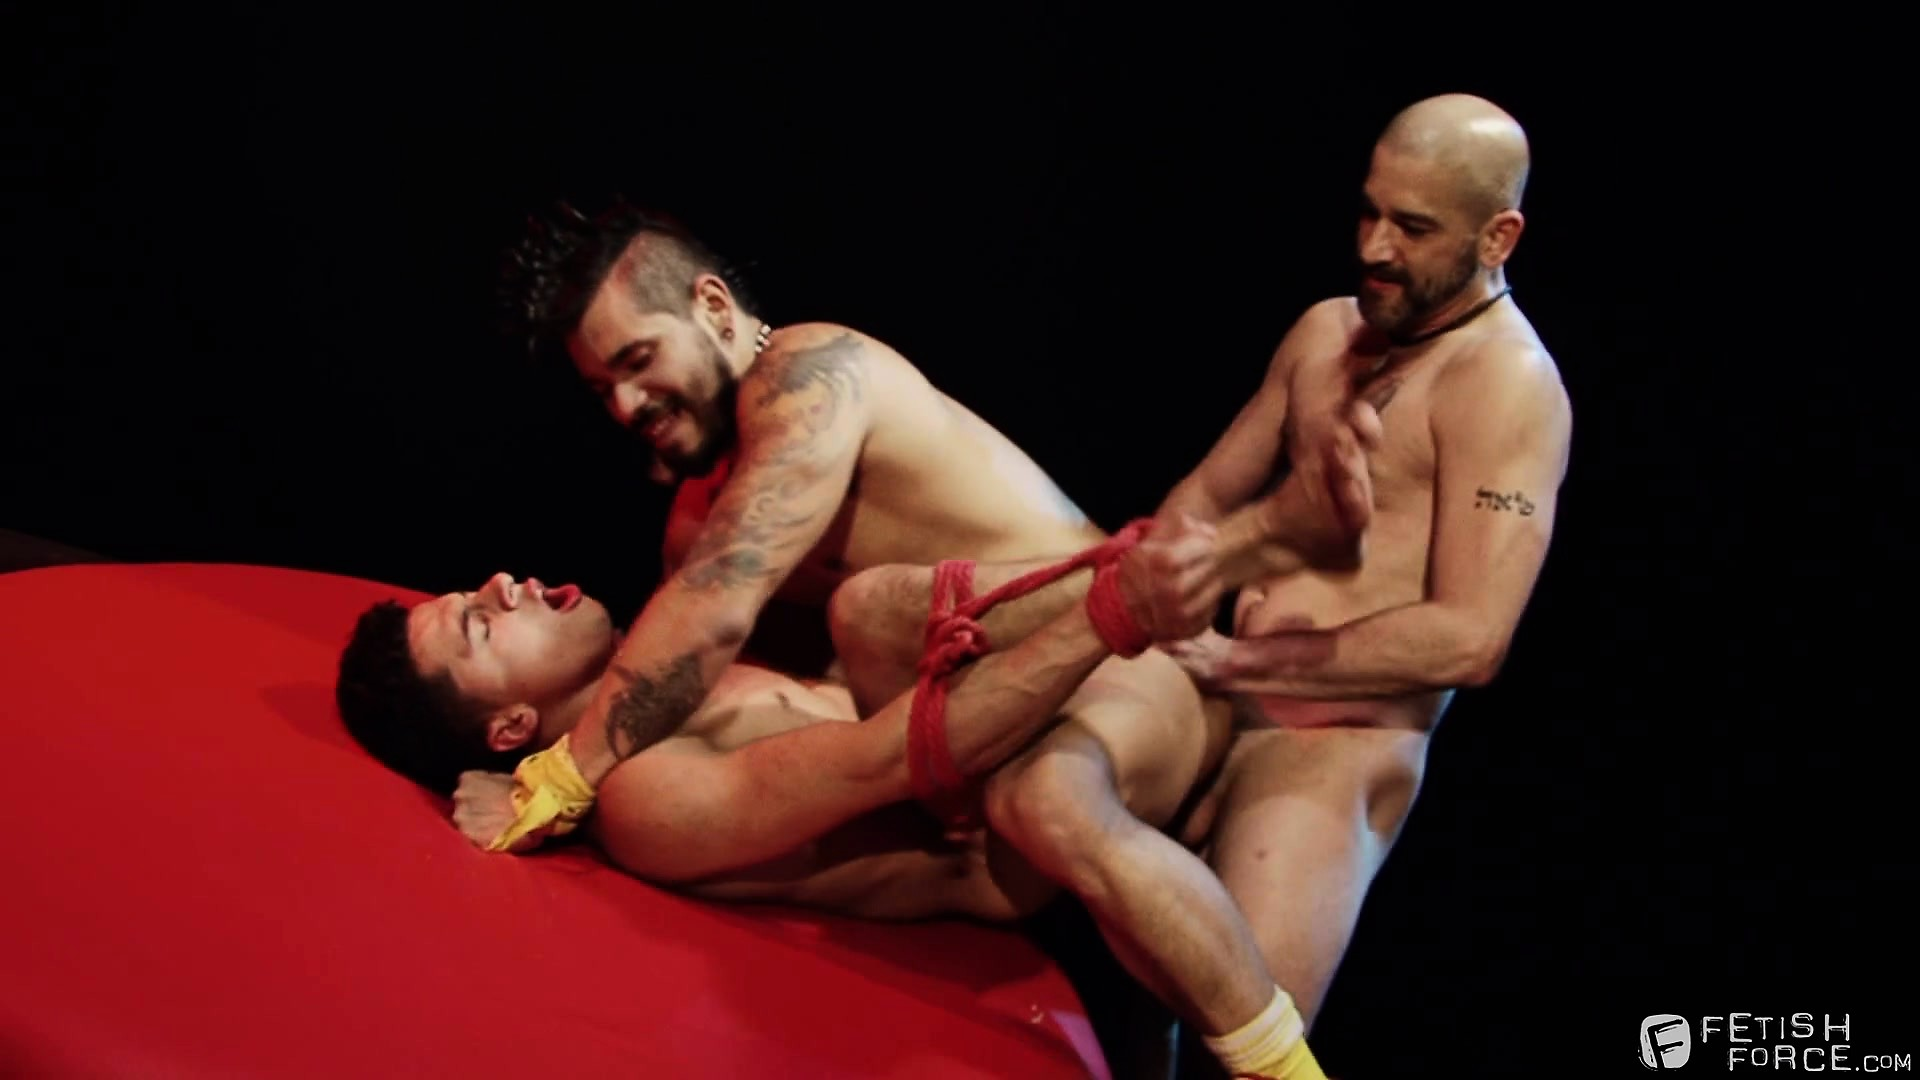 Free Mobile Porn & Sex Videos & Sex Movies - Super Hot Gay Studs Have A  Three Way With Hardcore Ass Pounding - 420458 - ProPorn.com